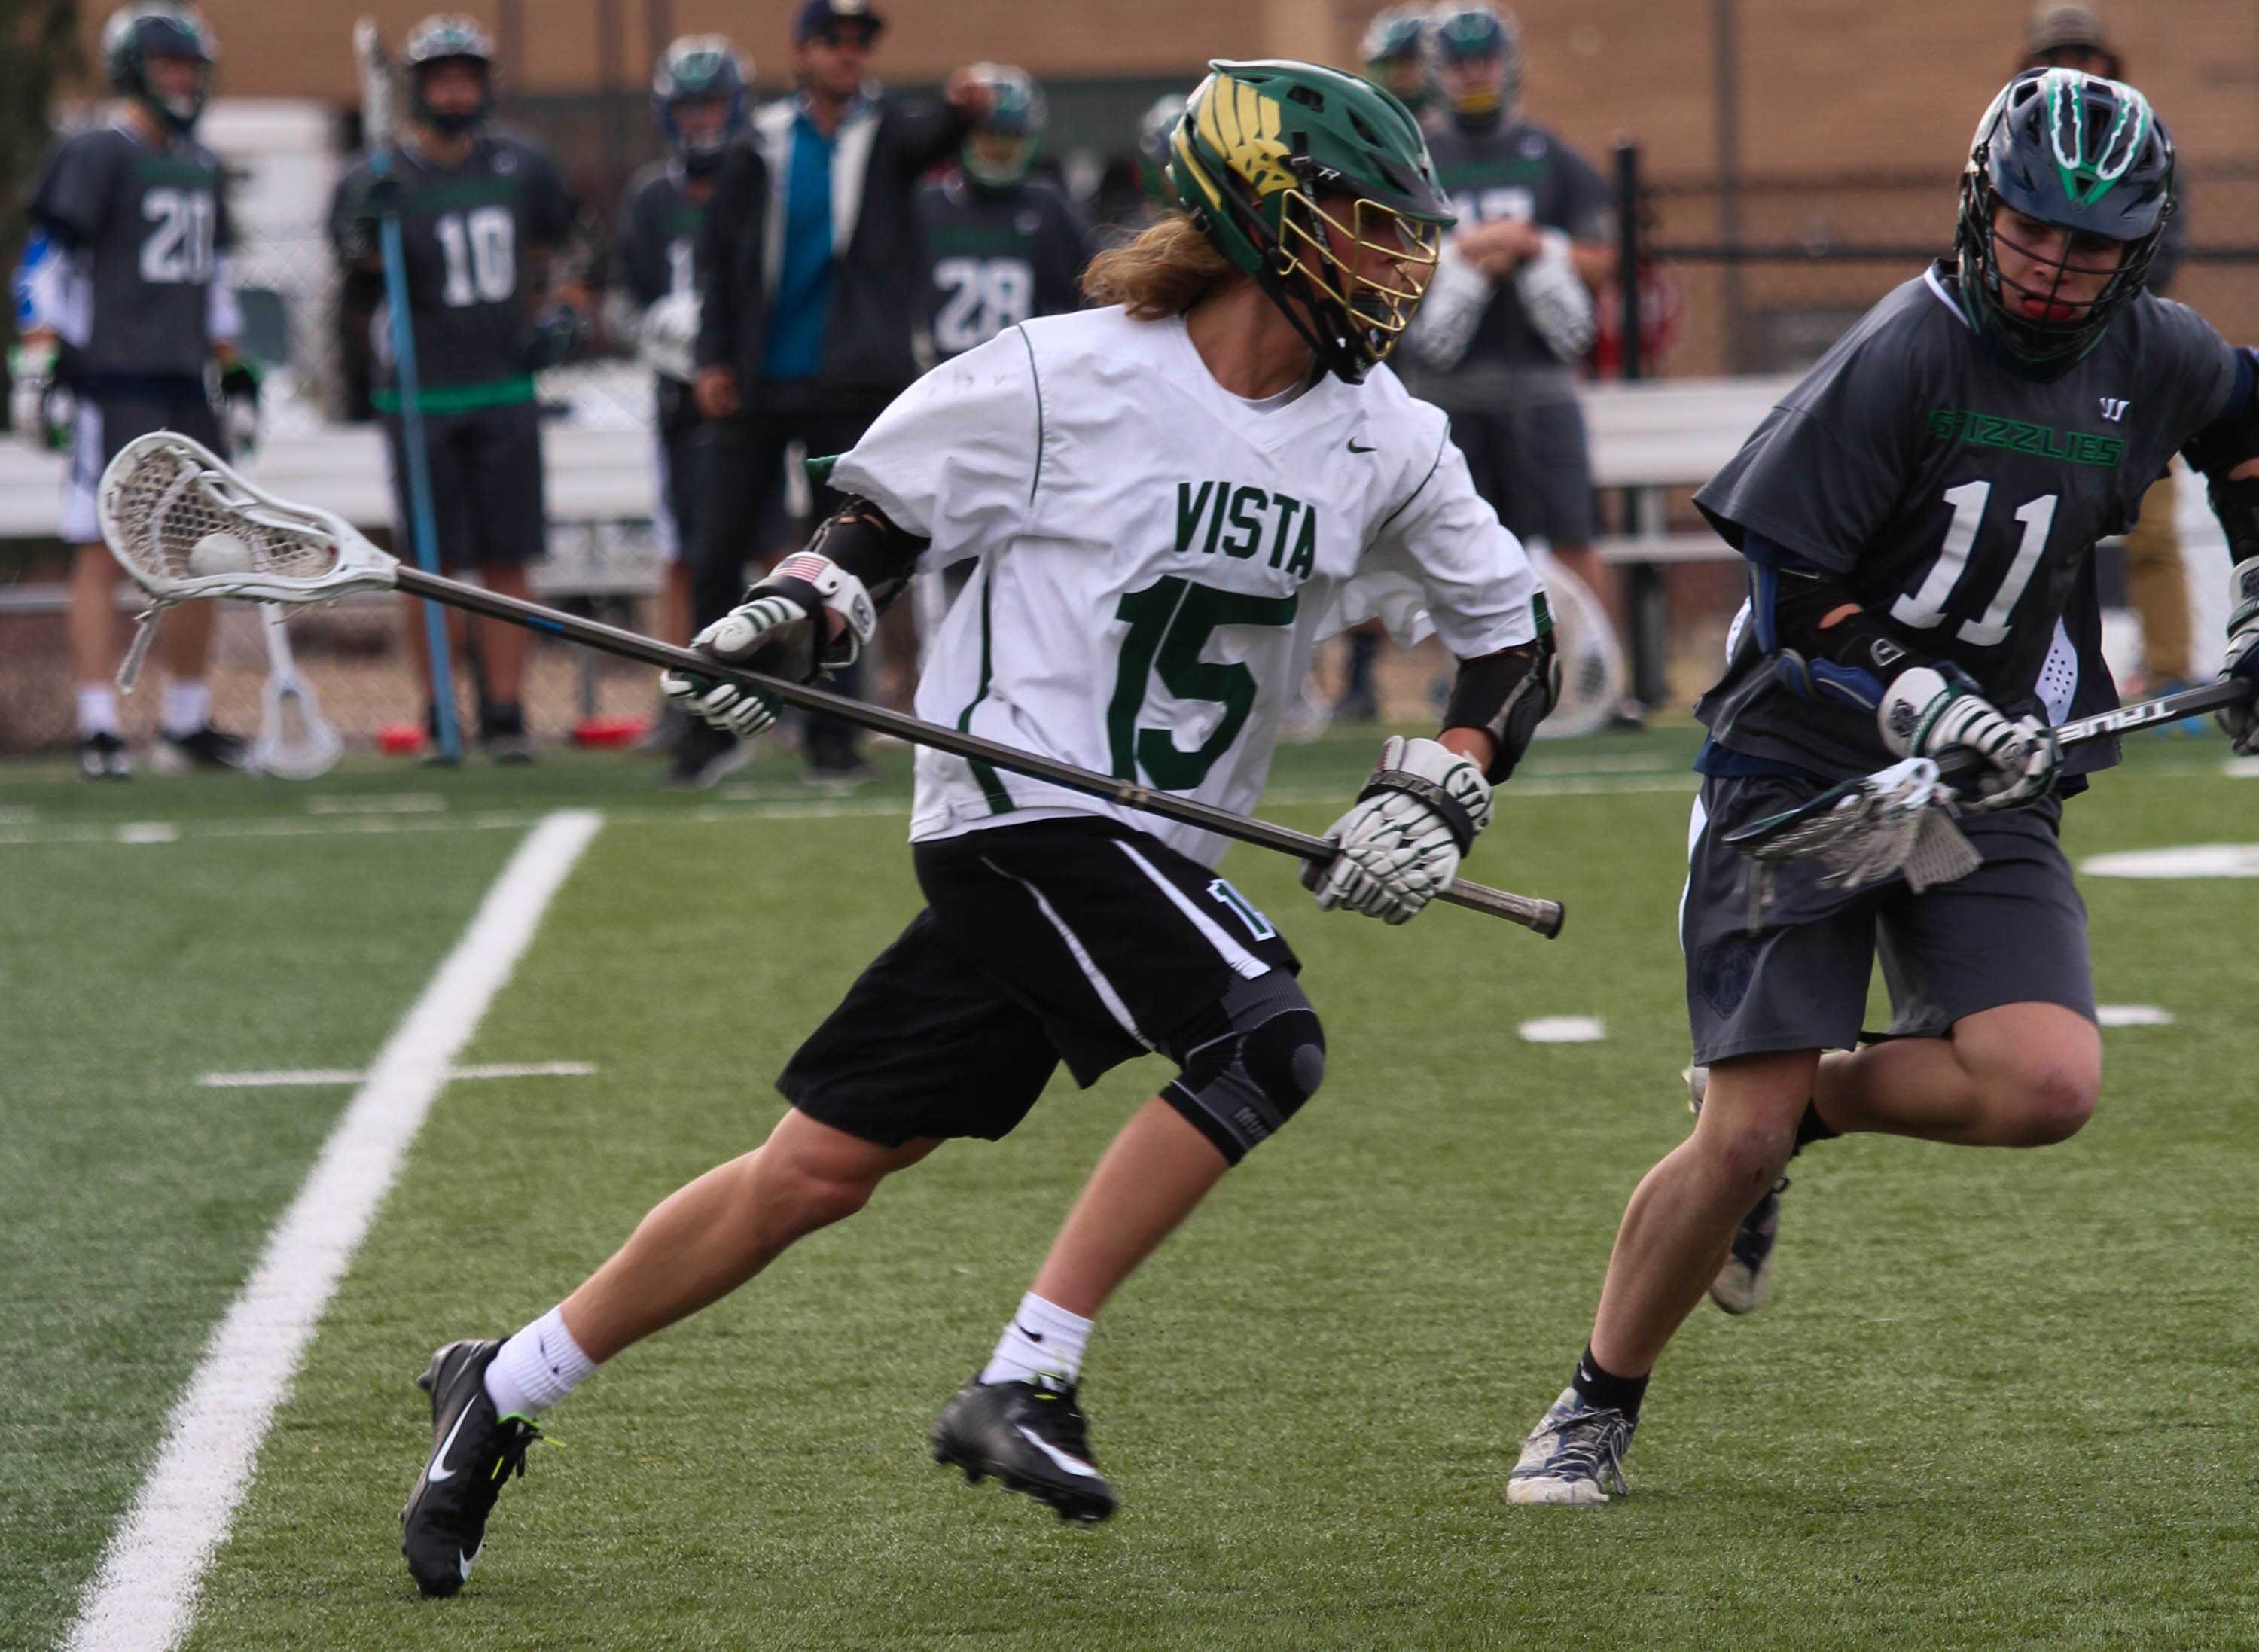 PHOTOS: Mens Varsity Lacrosse vs. ThunderRidge